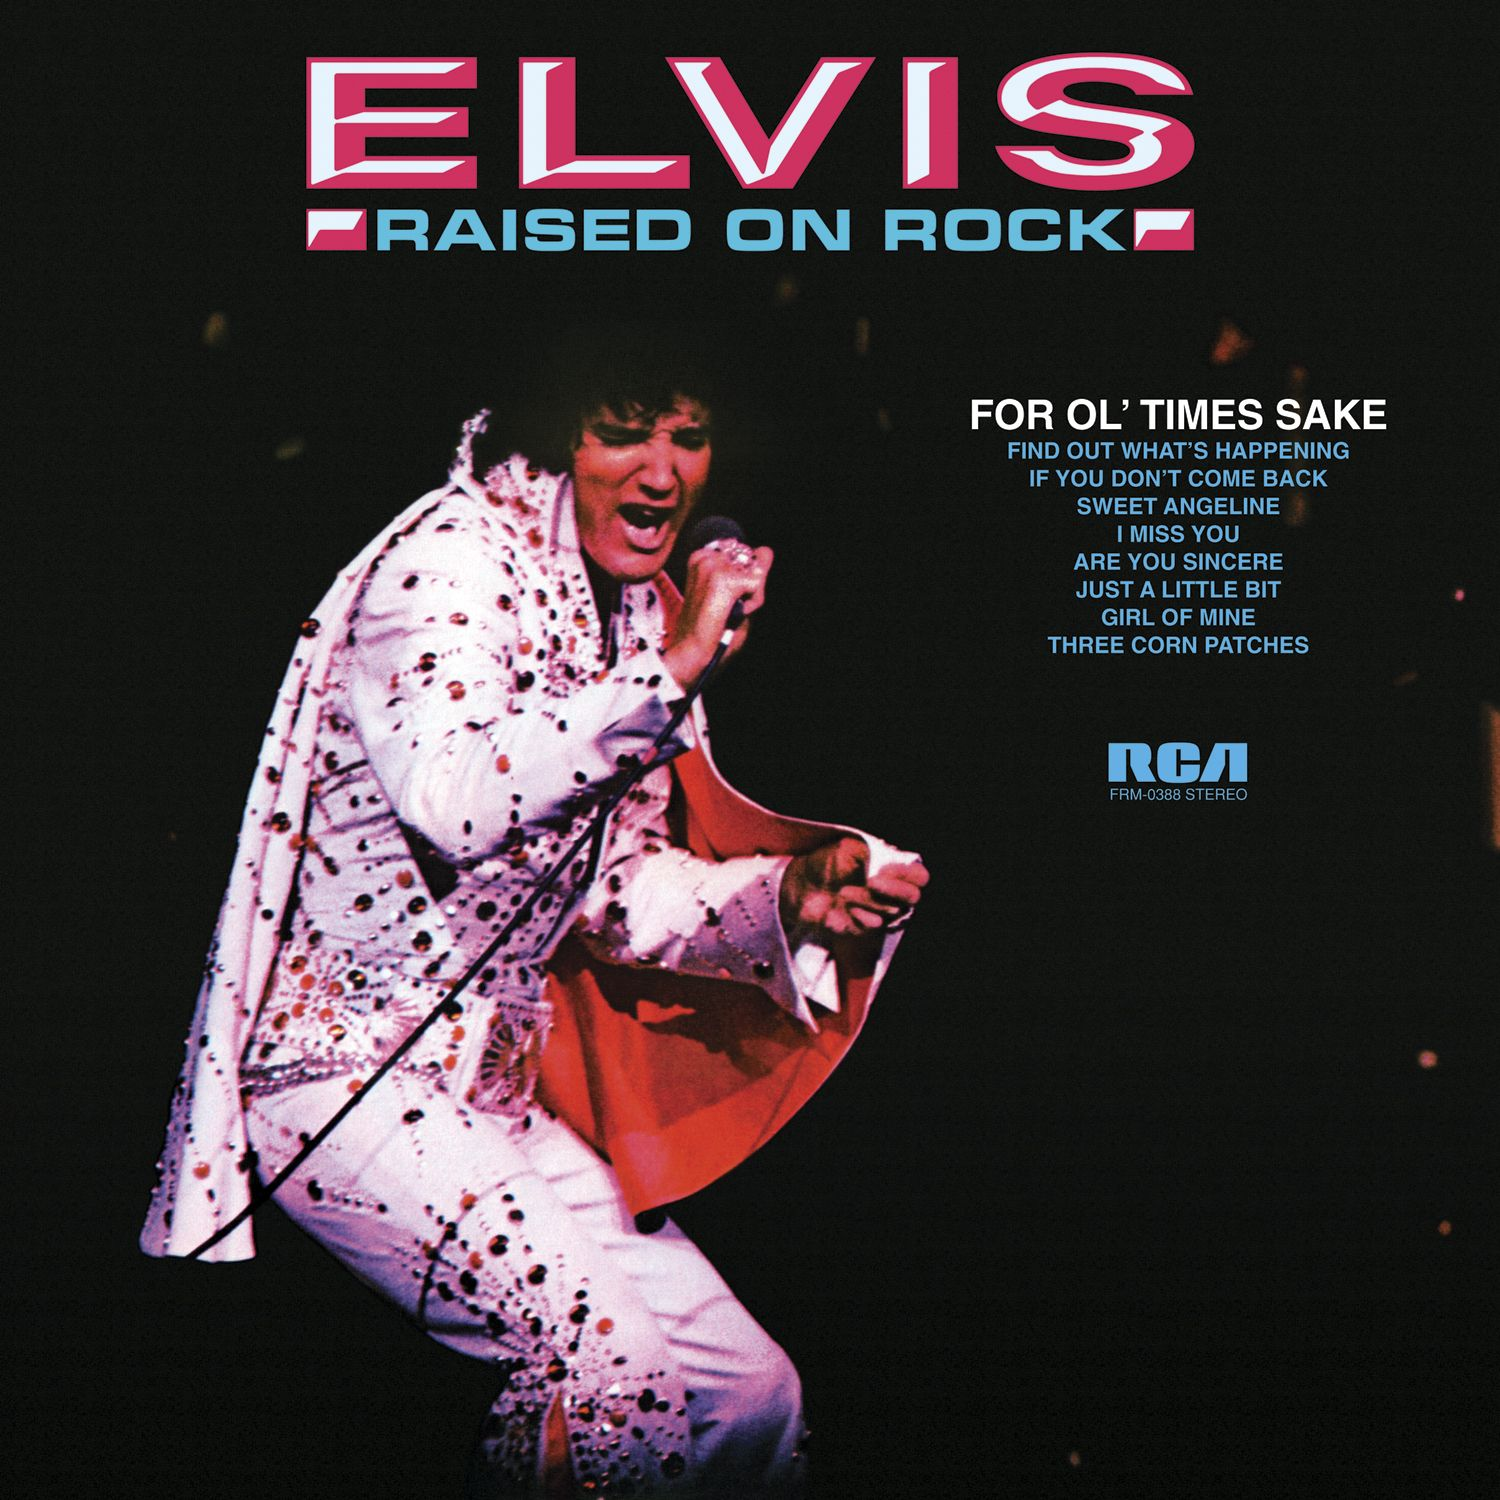 Elvis Presley - Raised On Rock/For Ol' Times Sake (180 Gram Audiophile Clear Vinyl/Ltd. Birthday Edition/Gatefold Cover)